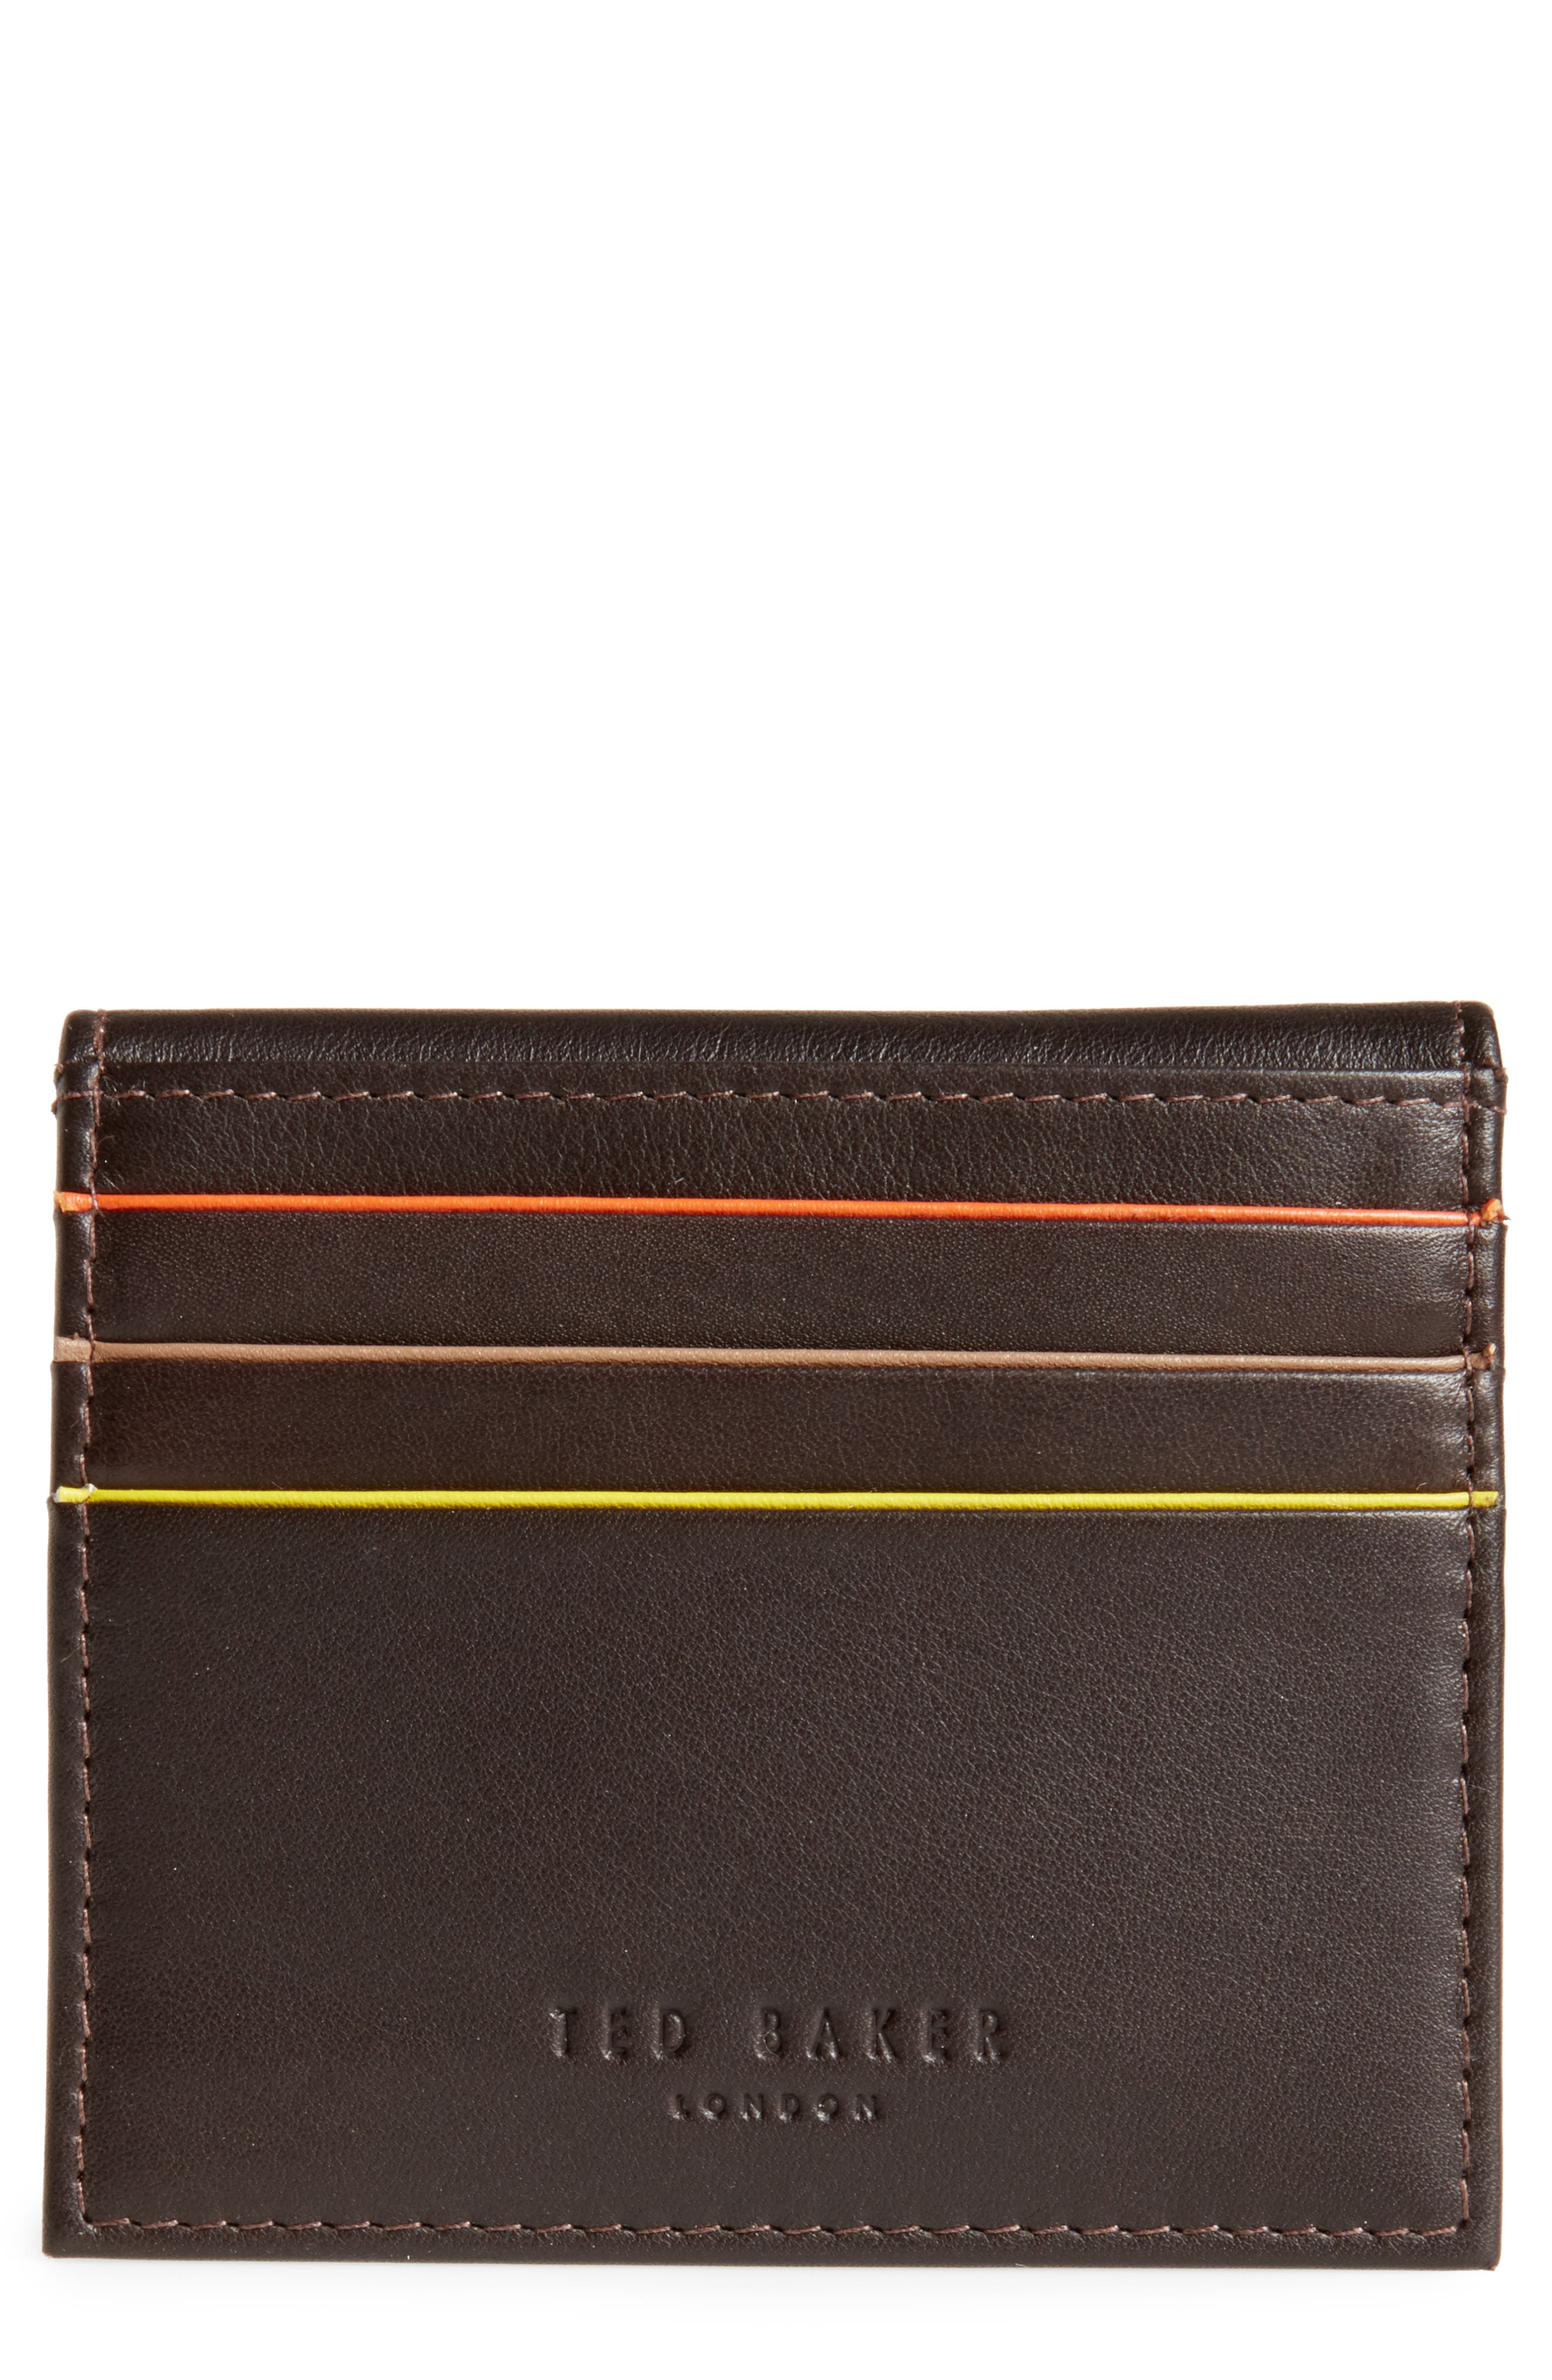 Foxes Stripe Leather Foldover Card Case,                             Main thumbnail 1, color,                             Chocolate